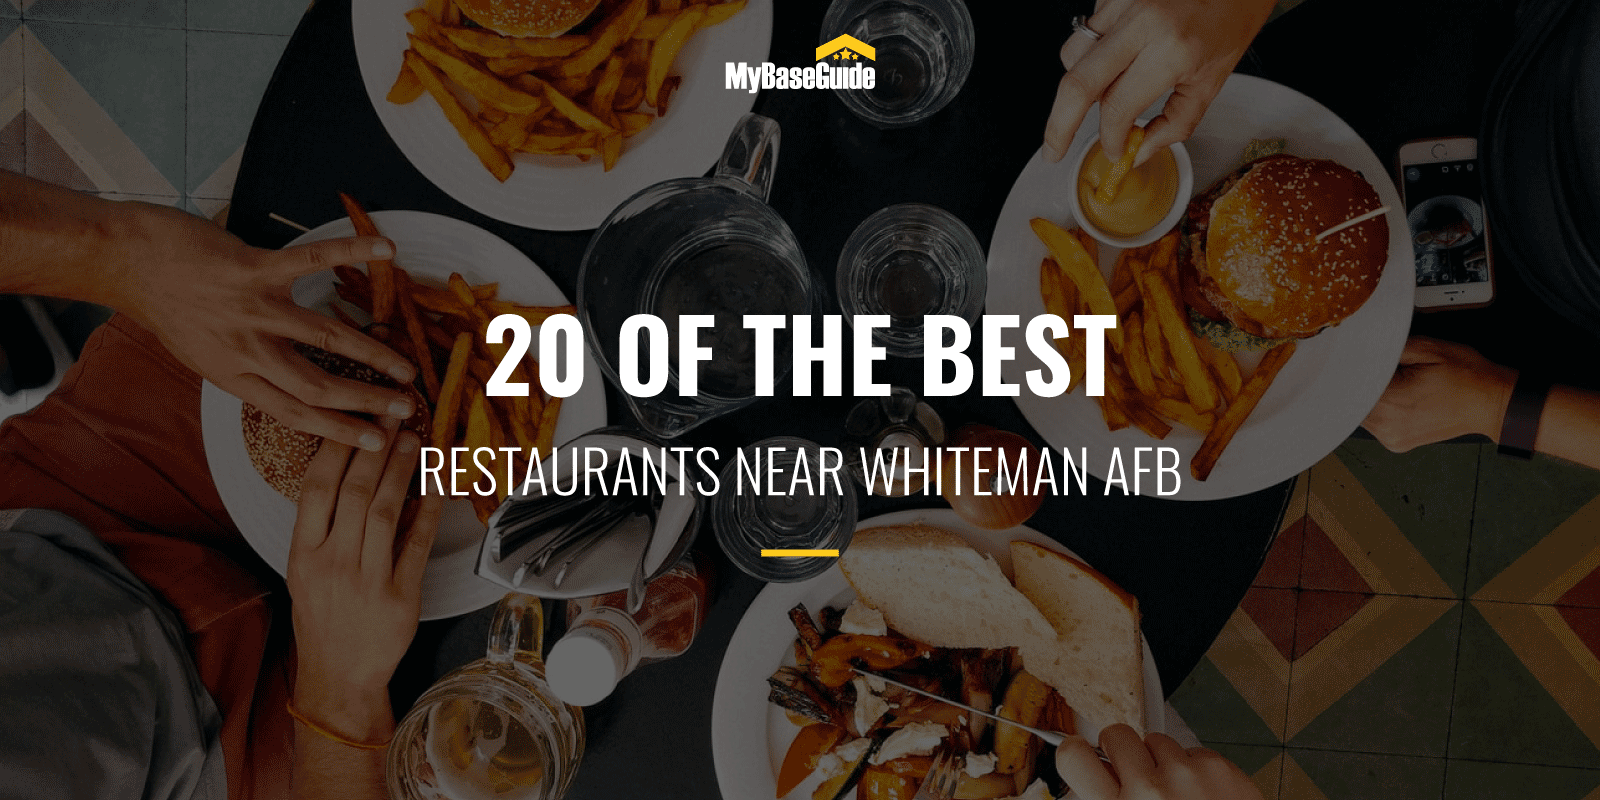 20 of the Best Restaurants Near Whiteman AFB